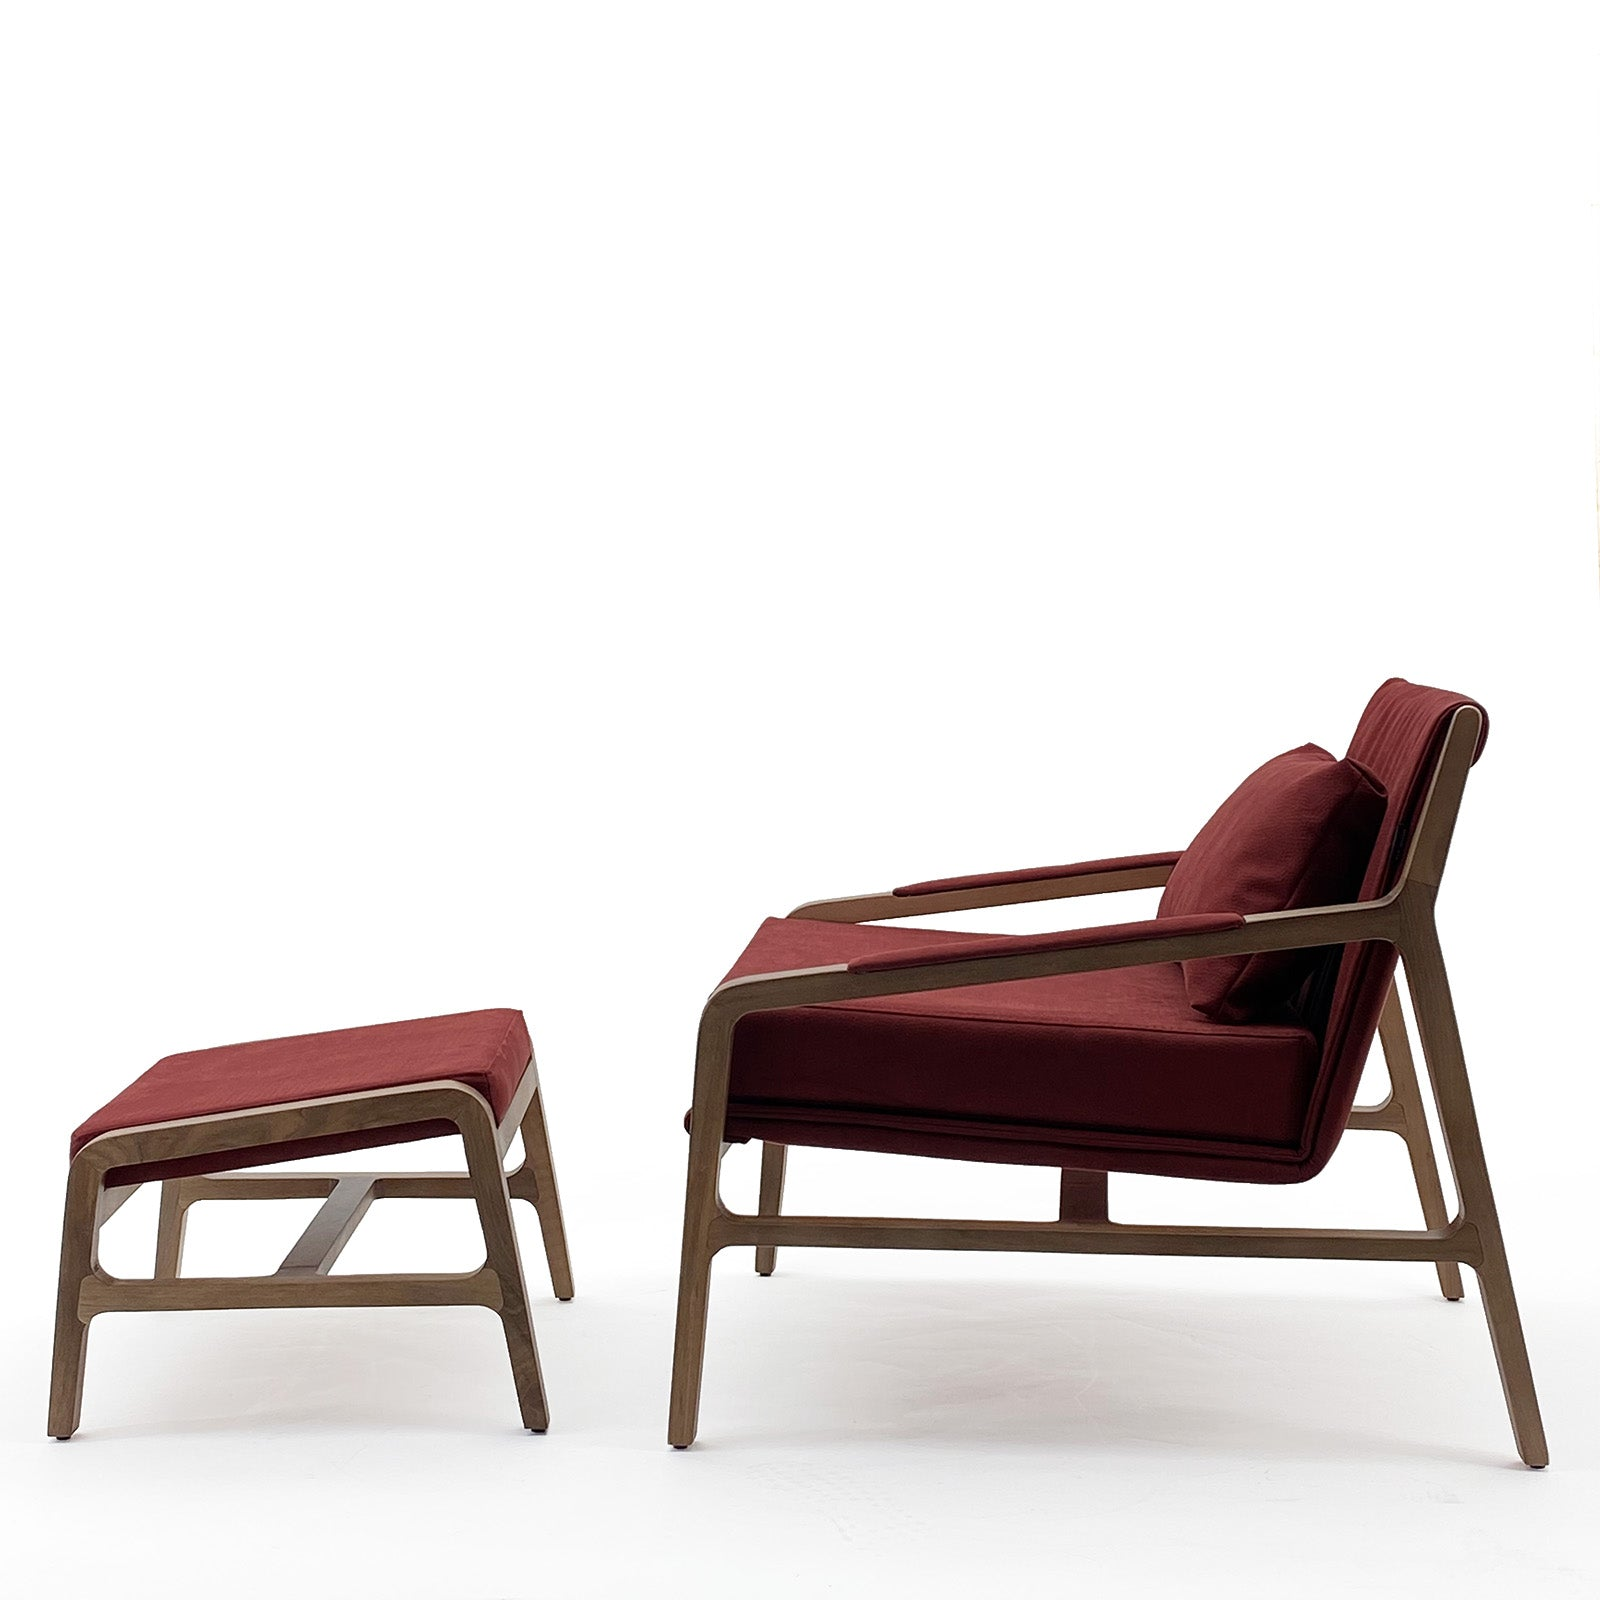 Nordic  solid wood lounge chair and ottoman   Nordic-001-R(ROSE Berger)